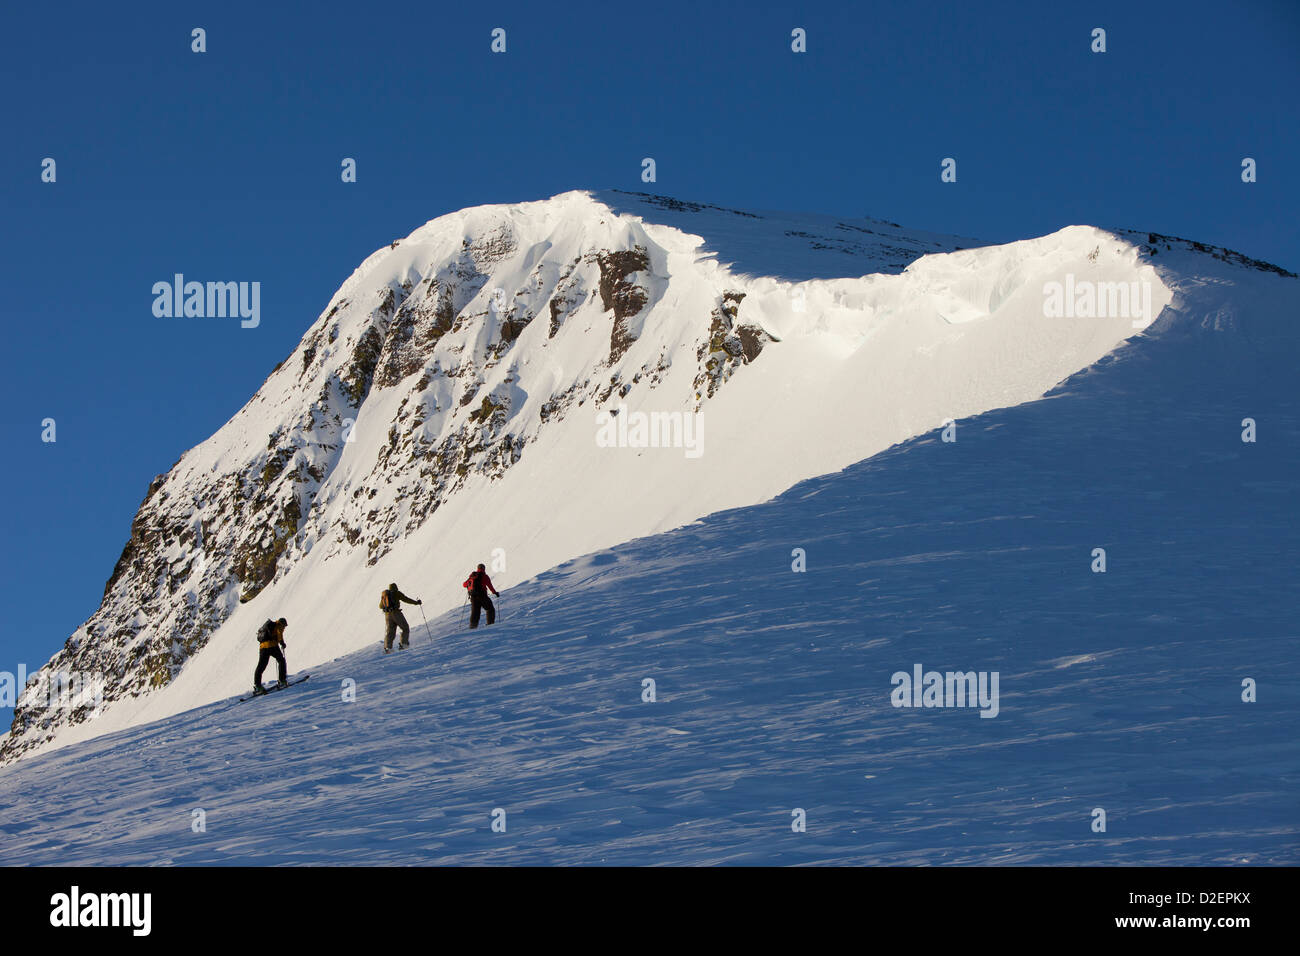 Three backcountry skiers hiking up a mountain in pink sunrise light. - Stock Image